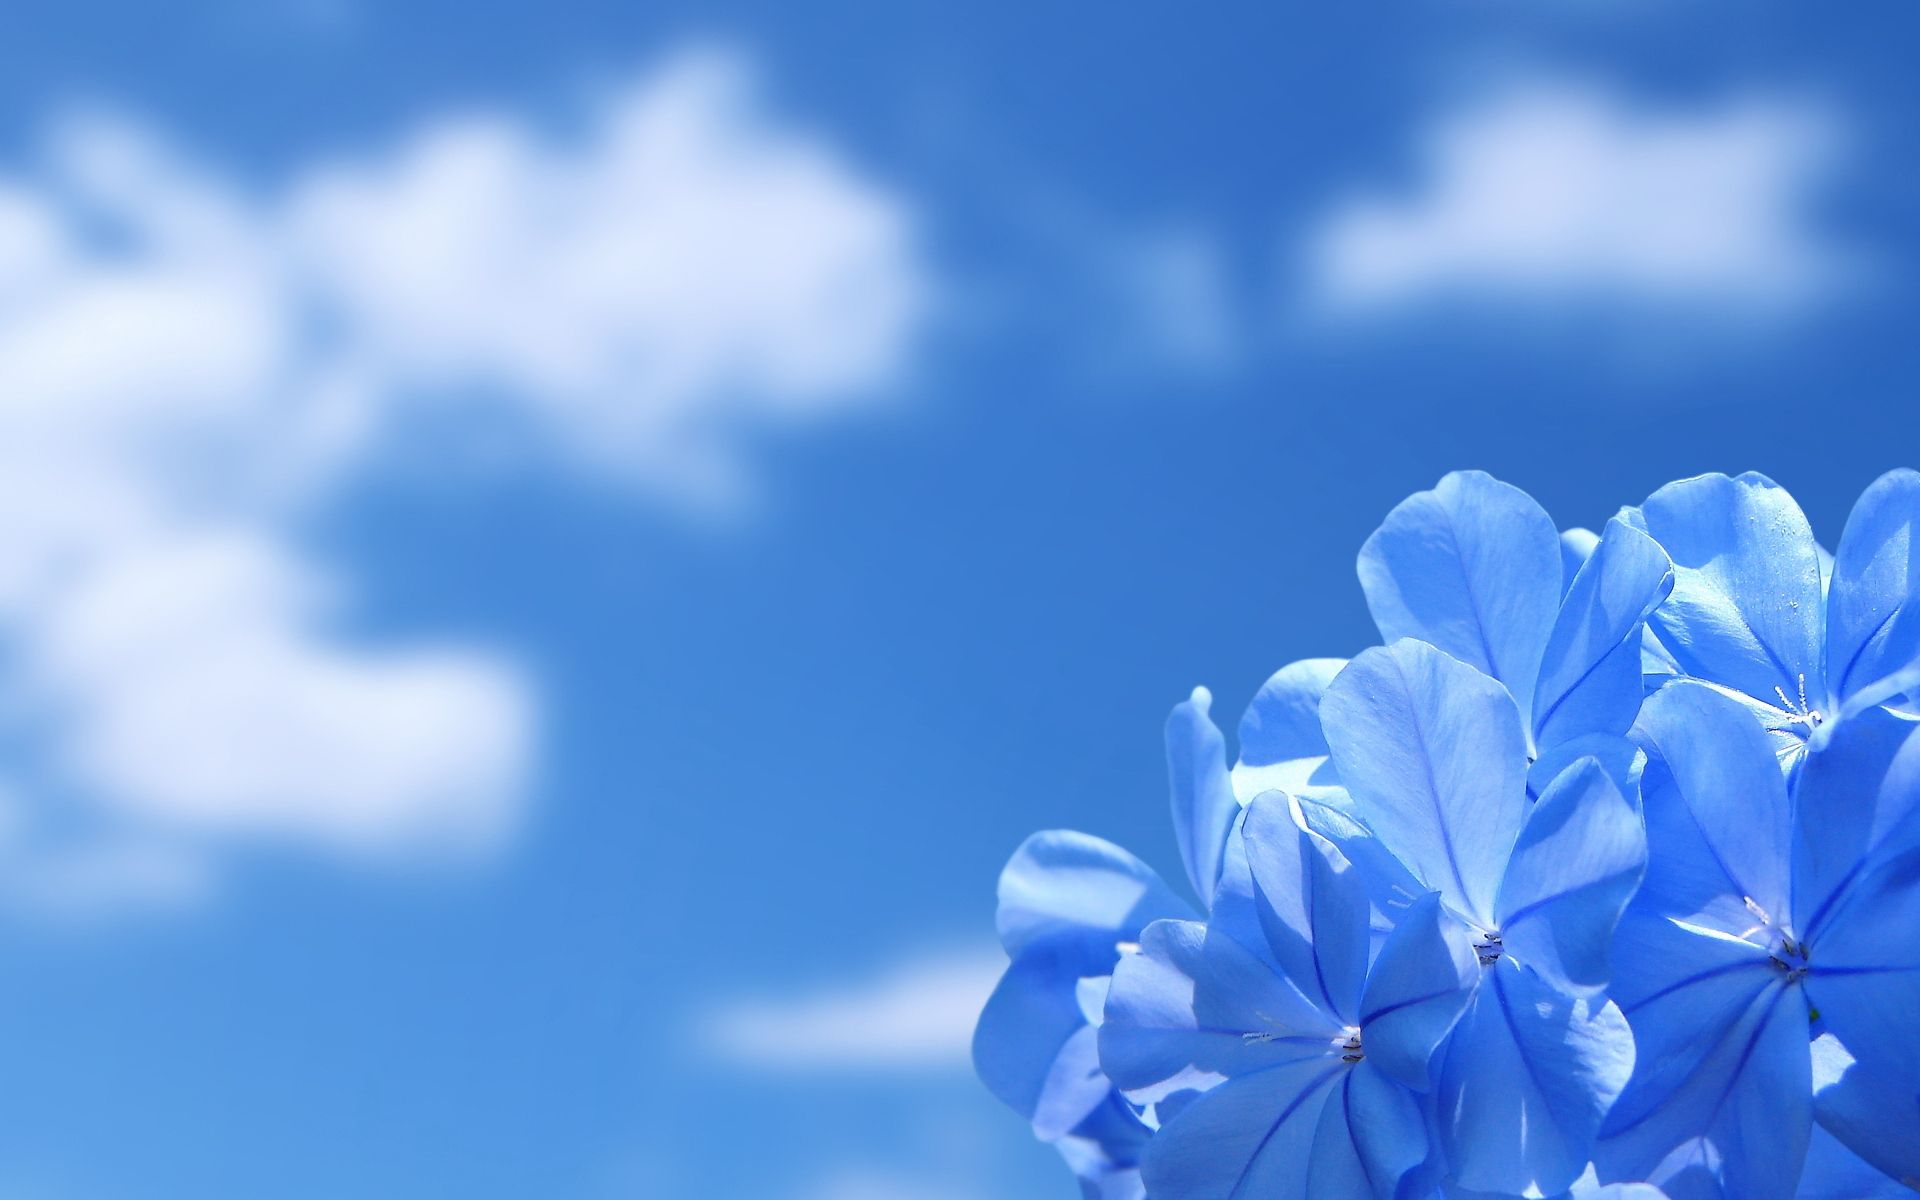 Pin By Sumaili Akili On Blue Blue Flower Wallpaper Blue Flower Pictures Blue Background Wallpapers